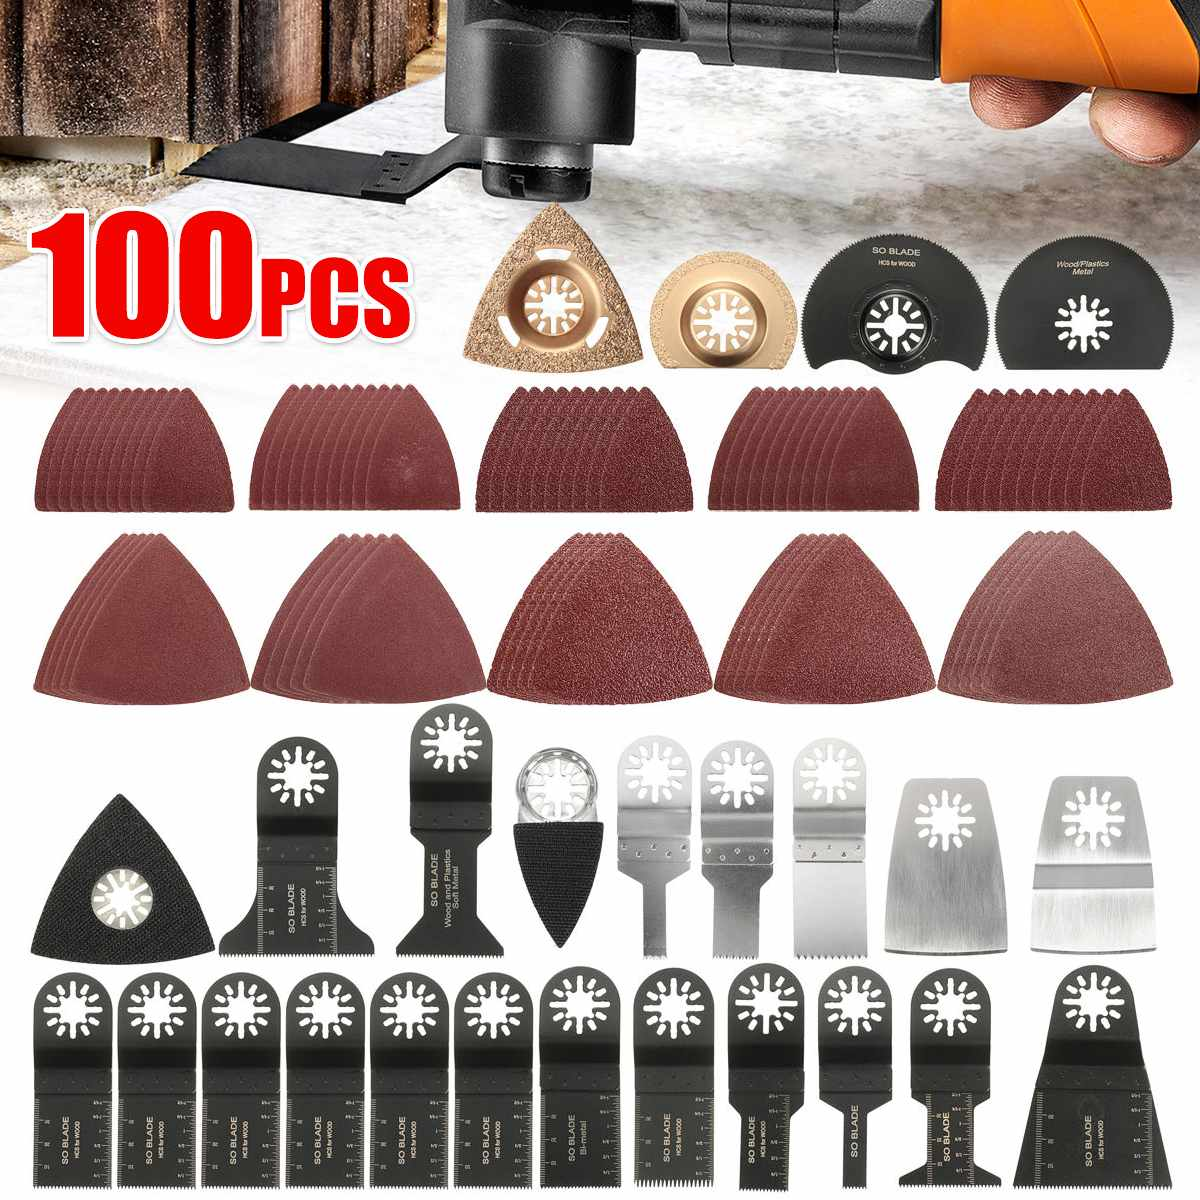 Drillpro 100pcs Mix Oscillating Multitool Saw Blade For Fein Makita Oscillating Tools